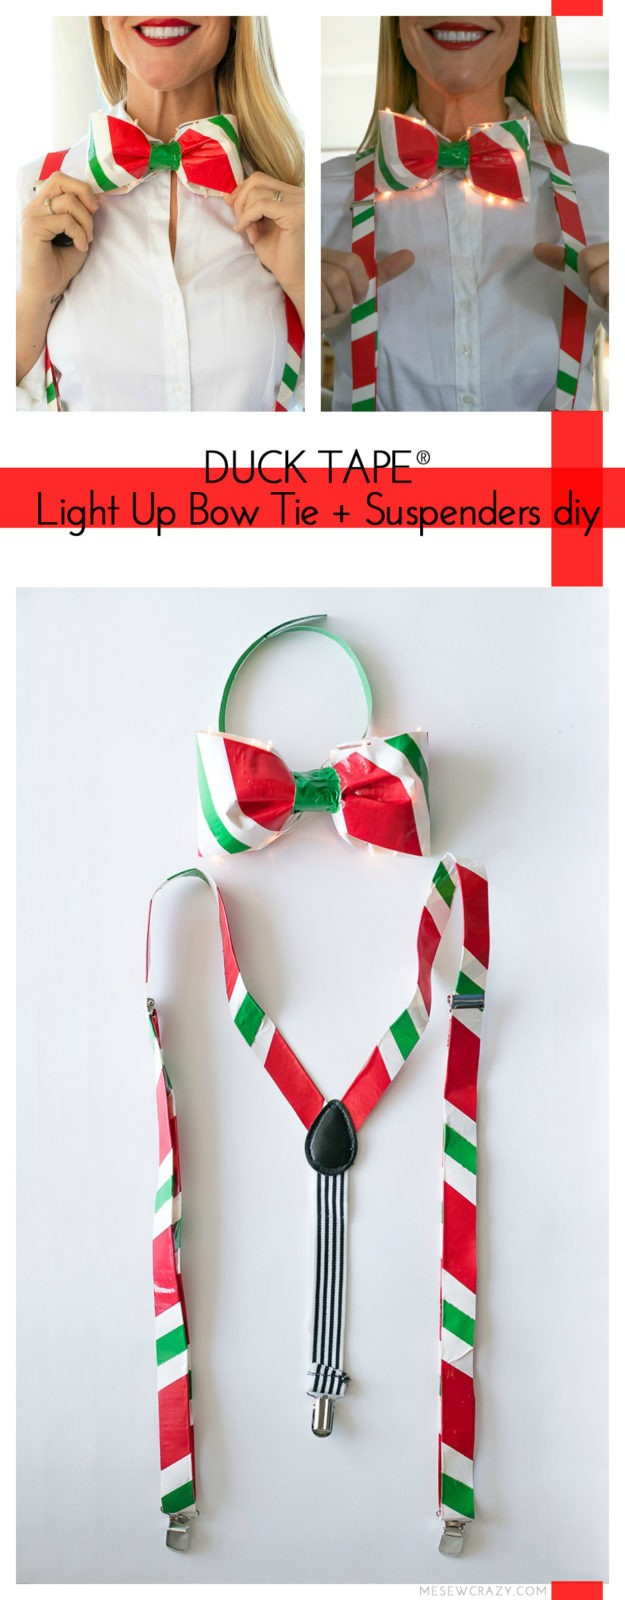 Use Duck Tape® to help make your Christmas party outfit extra special this year